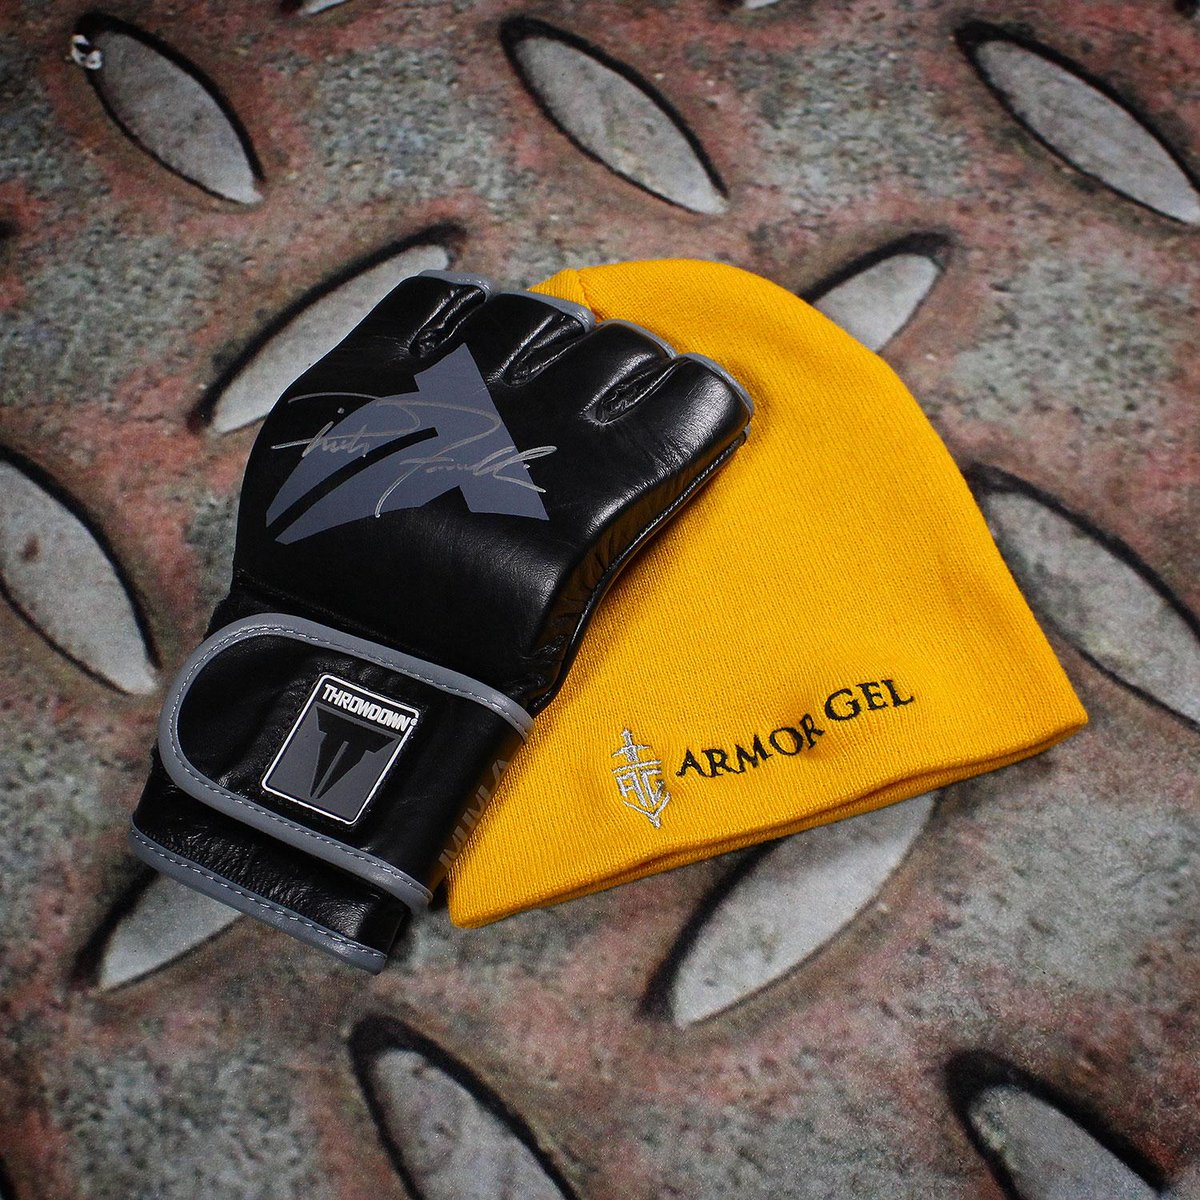 GIVEAWAY! @RichFranklin signed glove and @armorgel beanie! Follow @Hypnotik_Brand and RT for a chance to win! http://t.co/u5gjaB0hE5